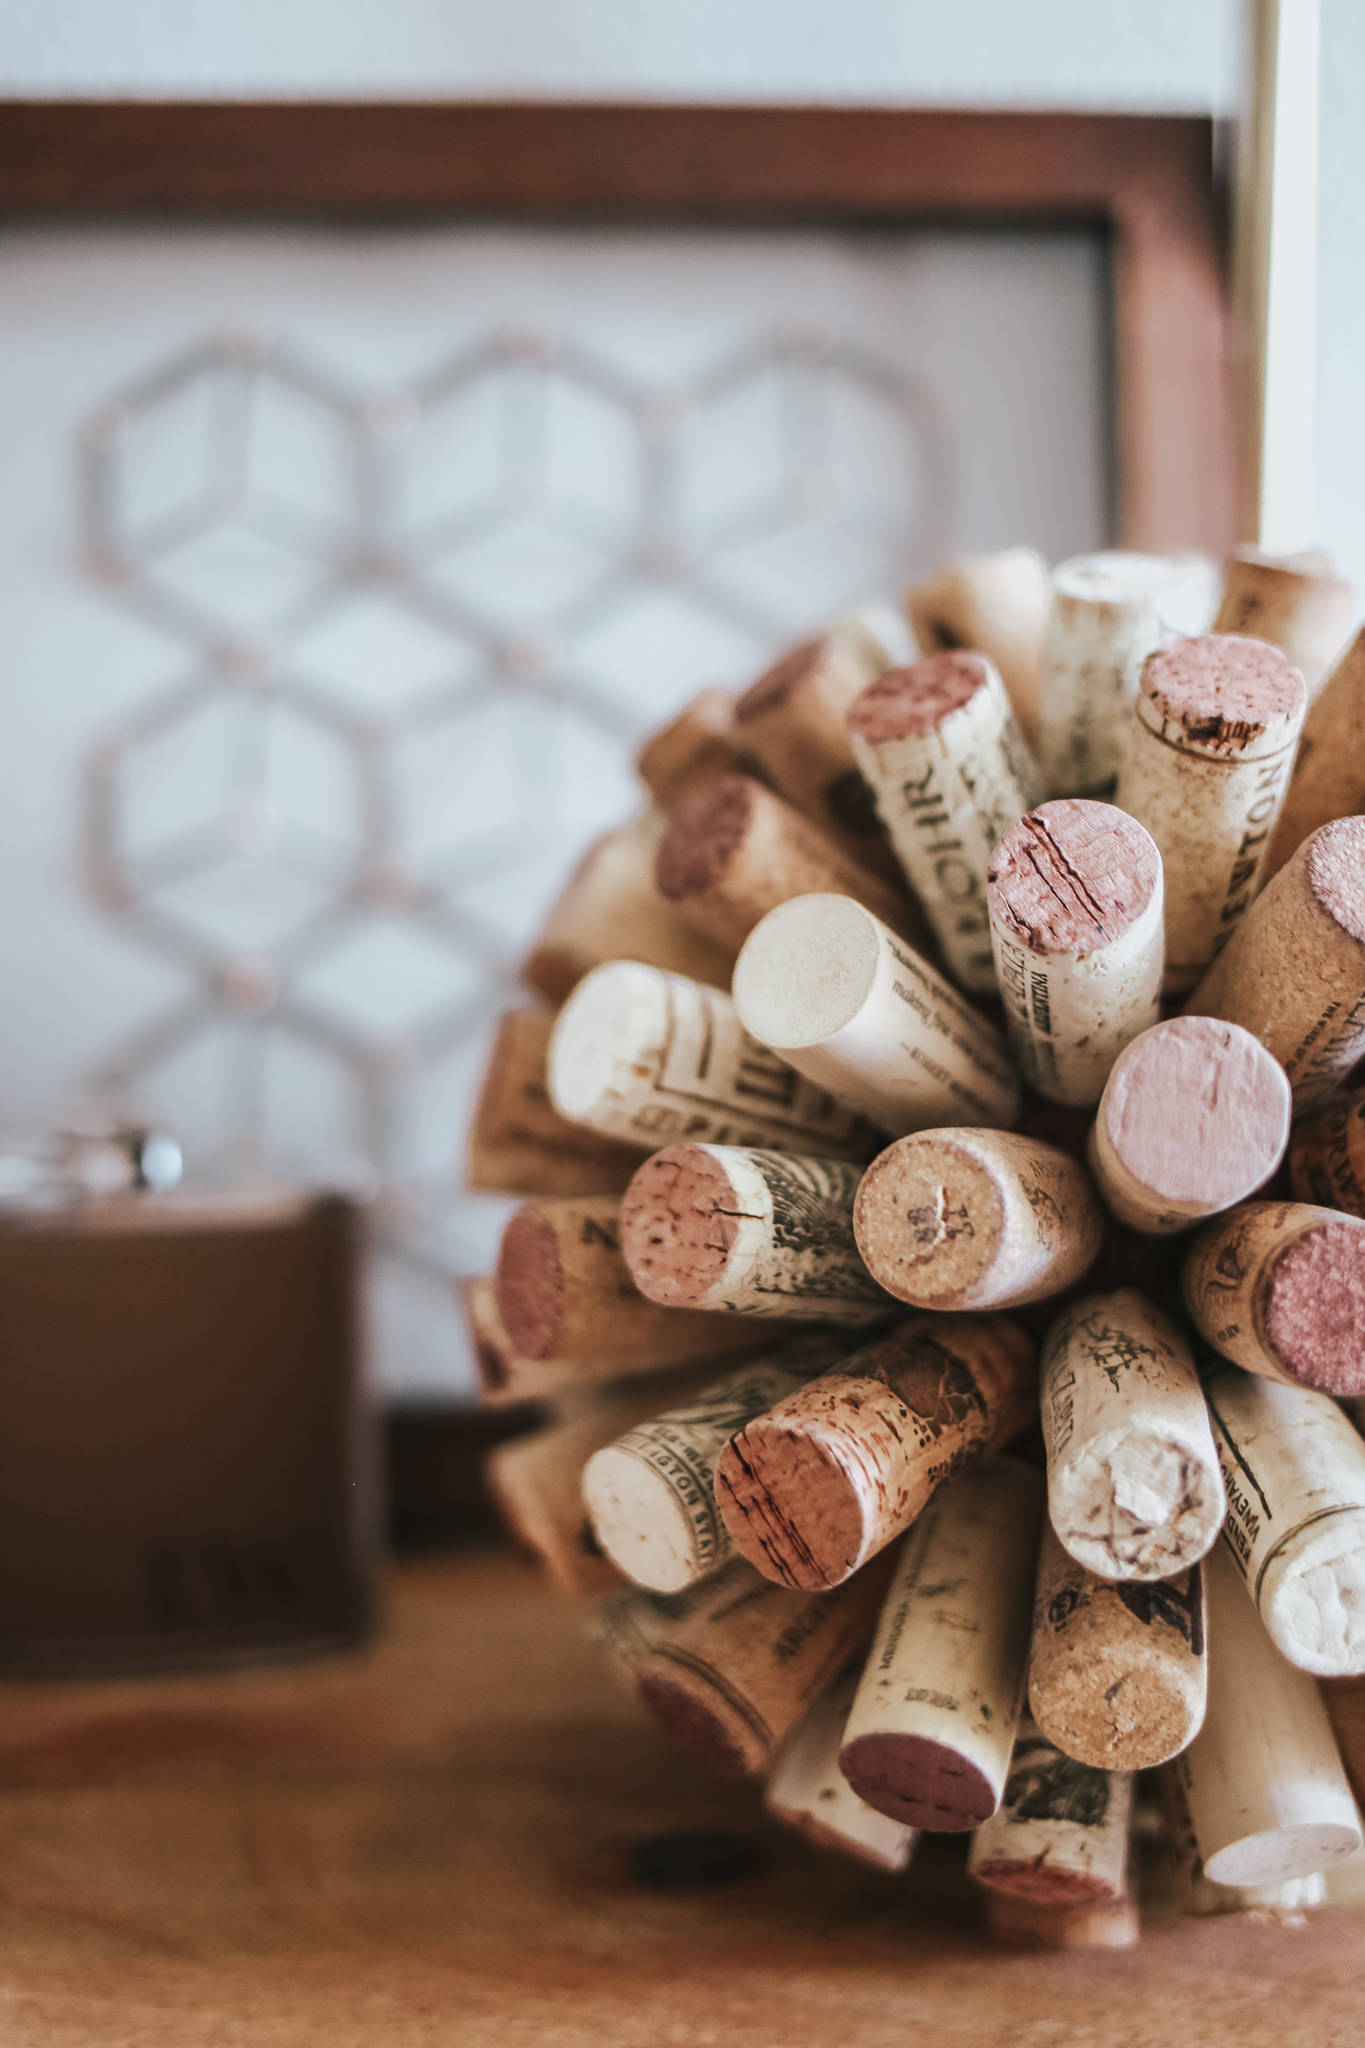 To make this DIY cork ball:  1) Get a 3 inch styrofoam ball from craft store  2) paint brown, allow to dry  3) hot glue corks as close as possible, until ball is covered (FYI it takes forever)!